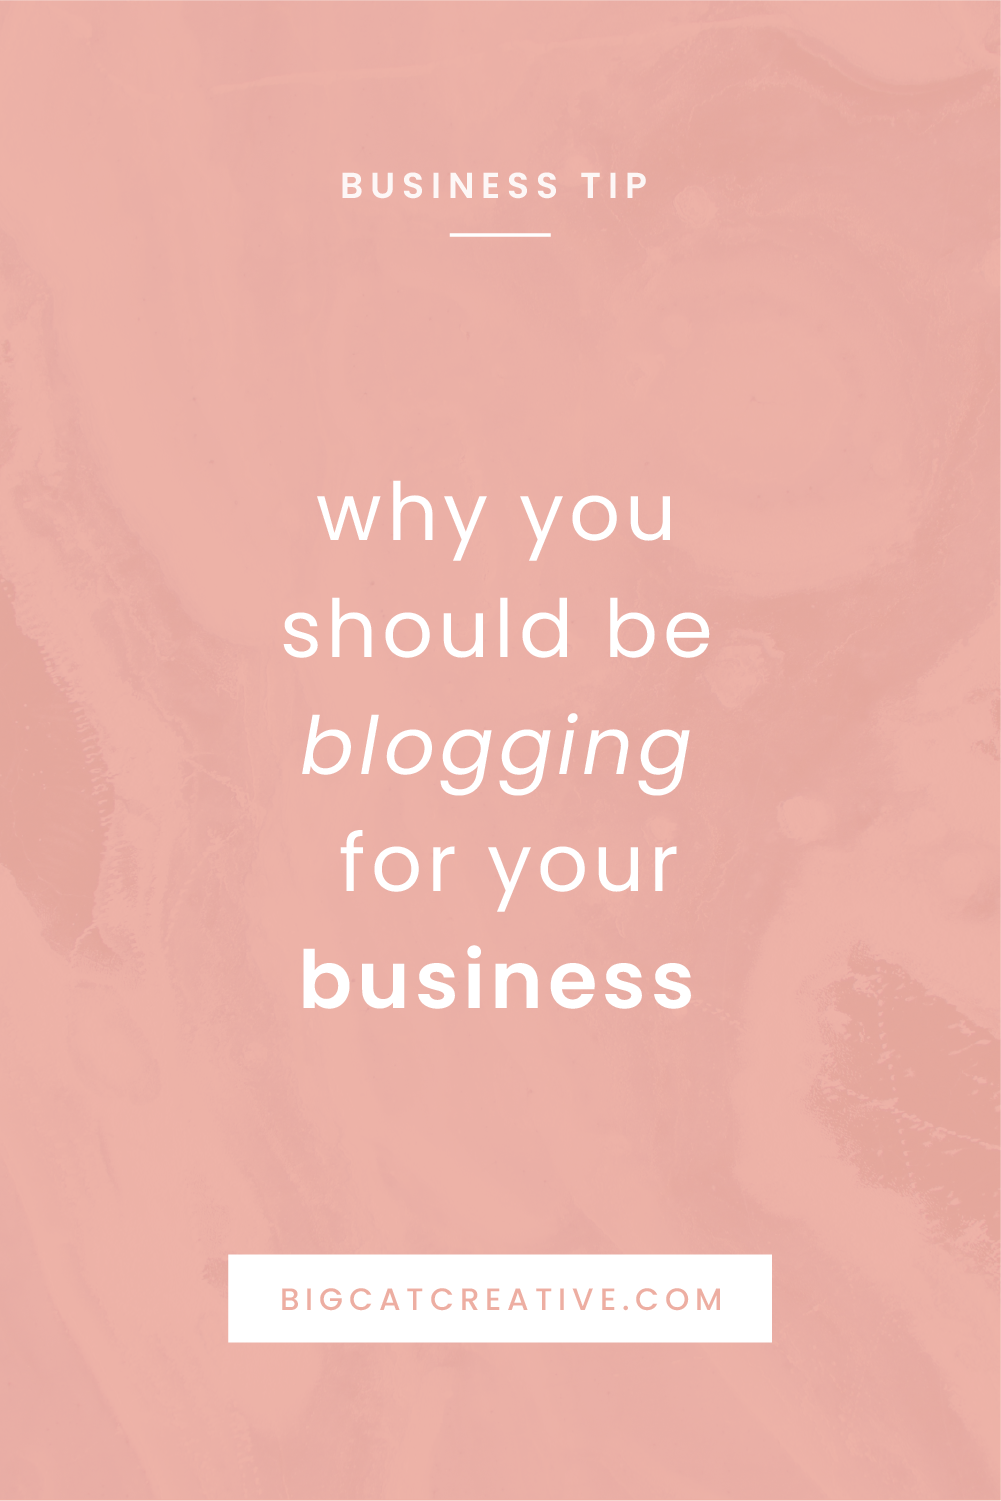 Why You Should be Blogging for Your Business | Business Tips by Big Cat Creative | Why Blogging Works | How to Blog for Small Business | Blogging Tips | Blogging for Beginners | Starting a Business Blog | Strategic Blog Tips | Content Marketing for Small Businesses